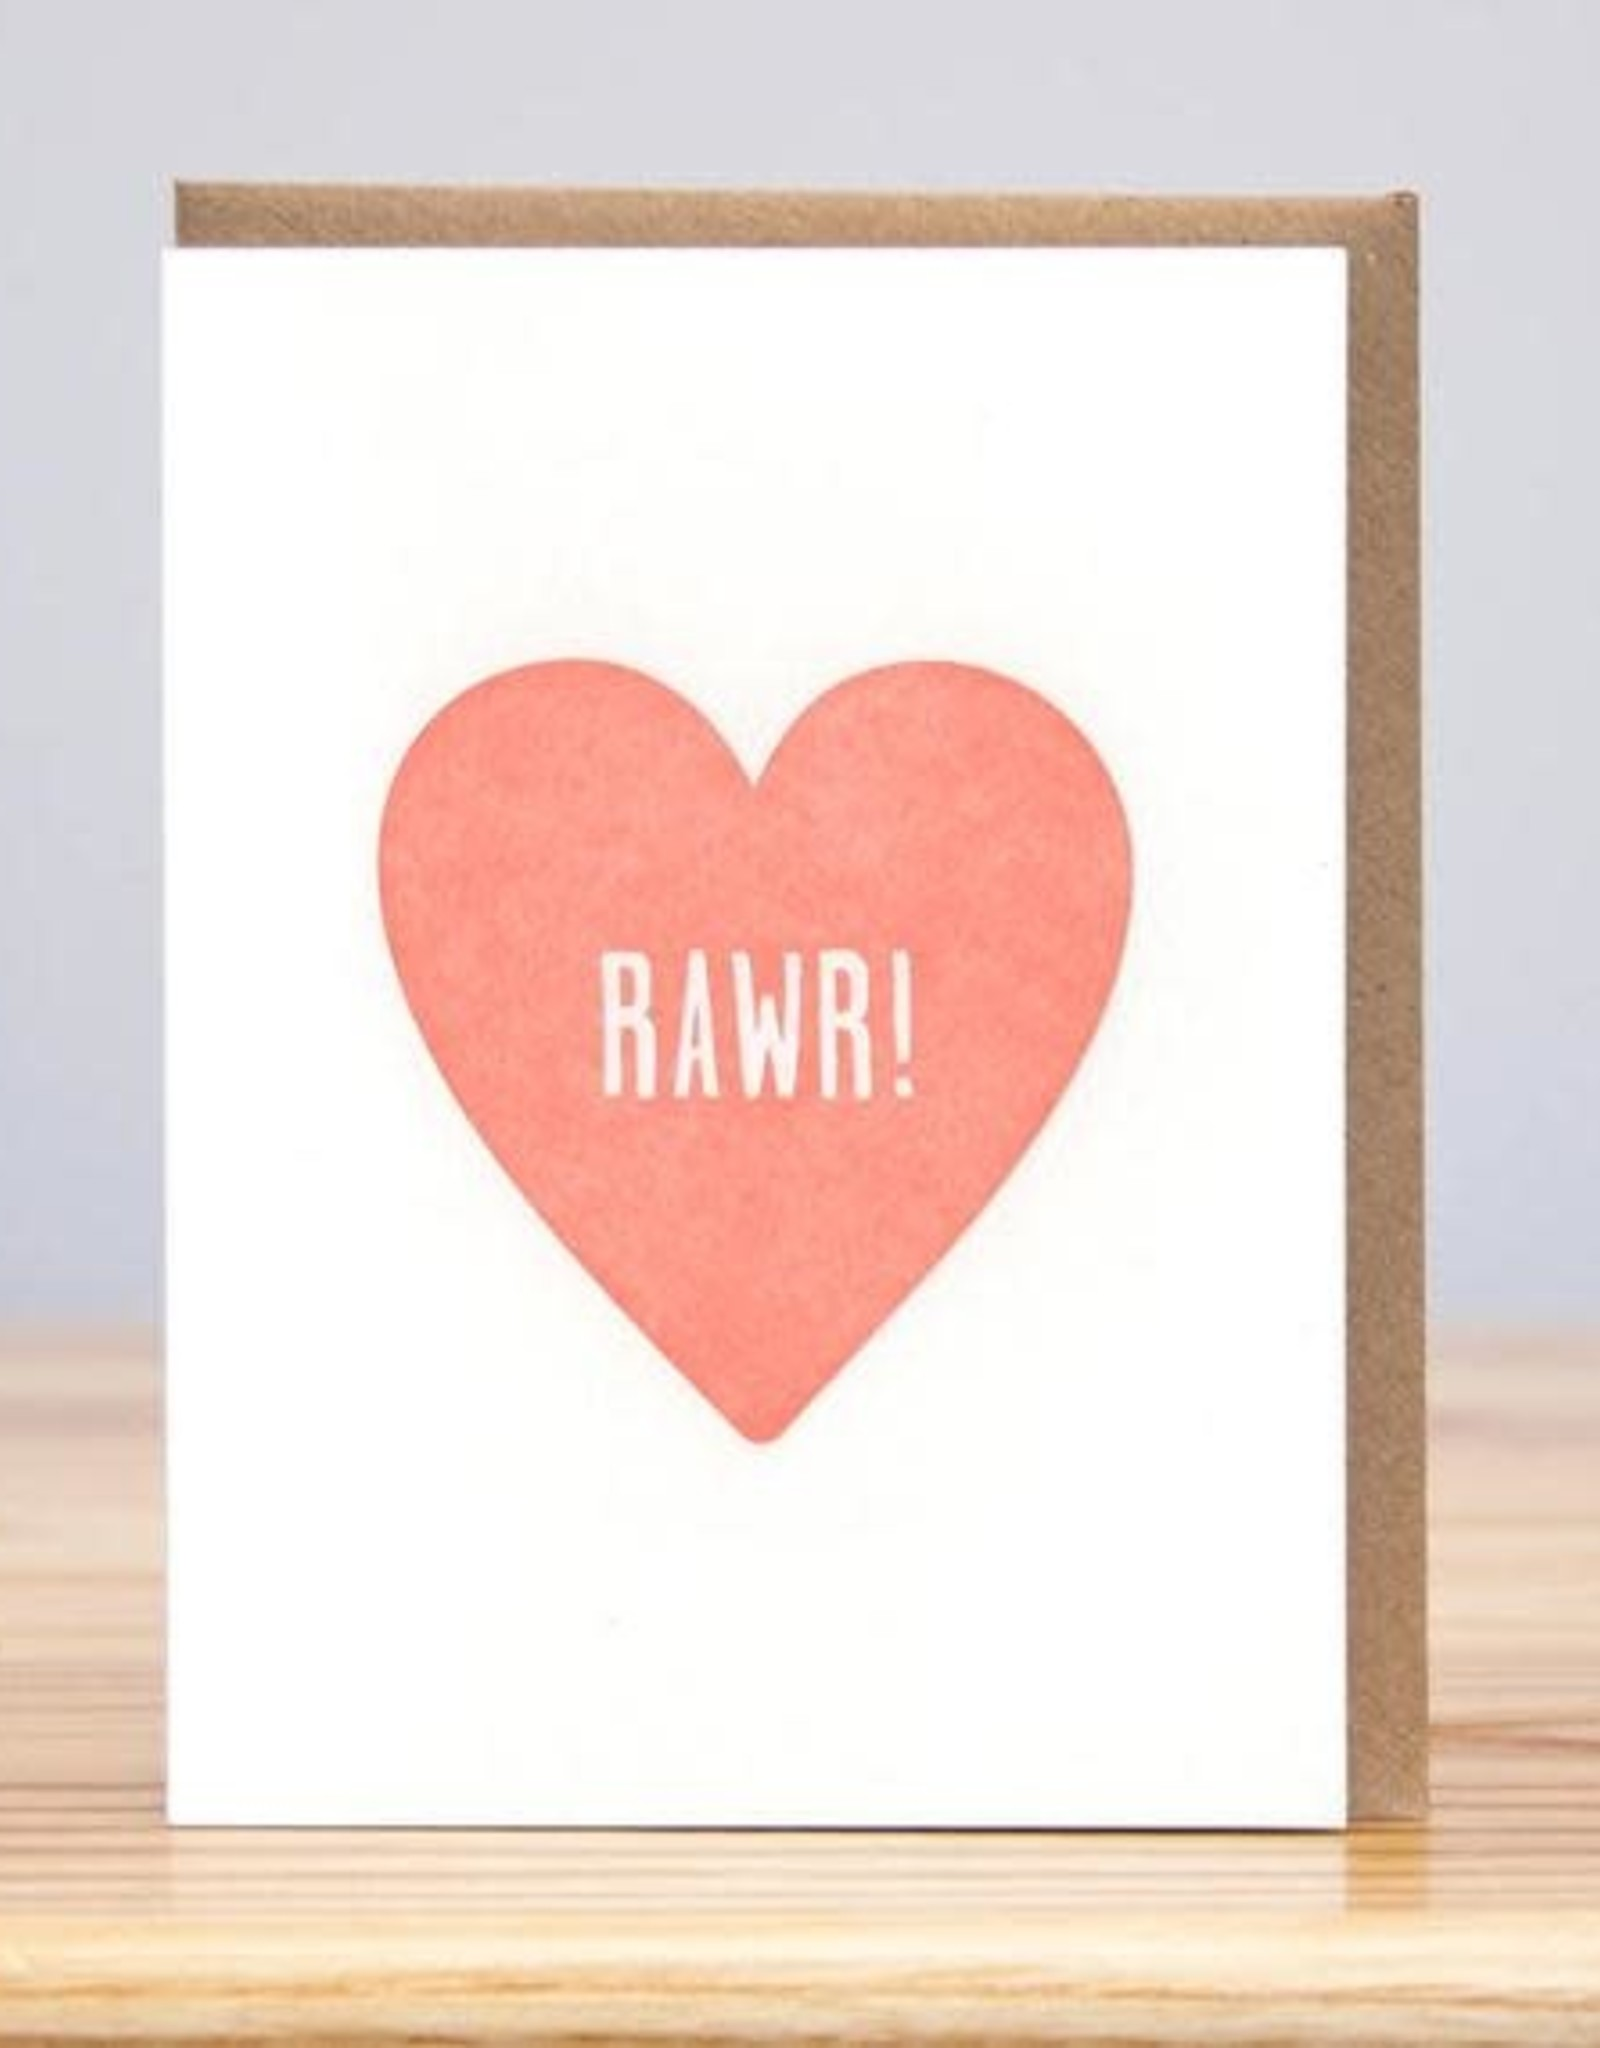 Rawr Heart Greeting Card